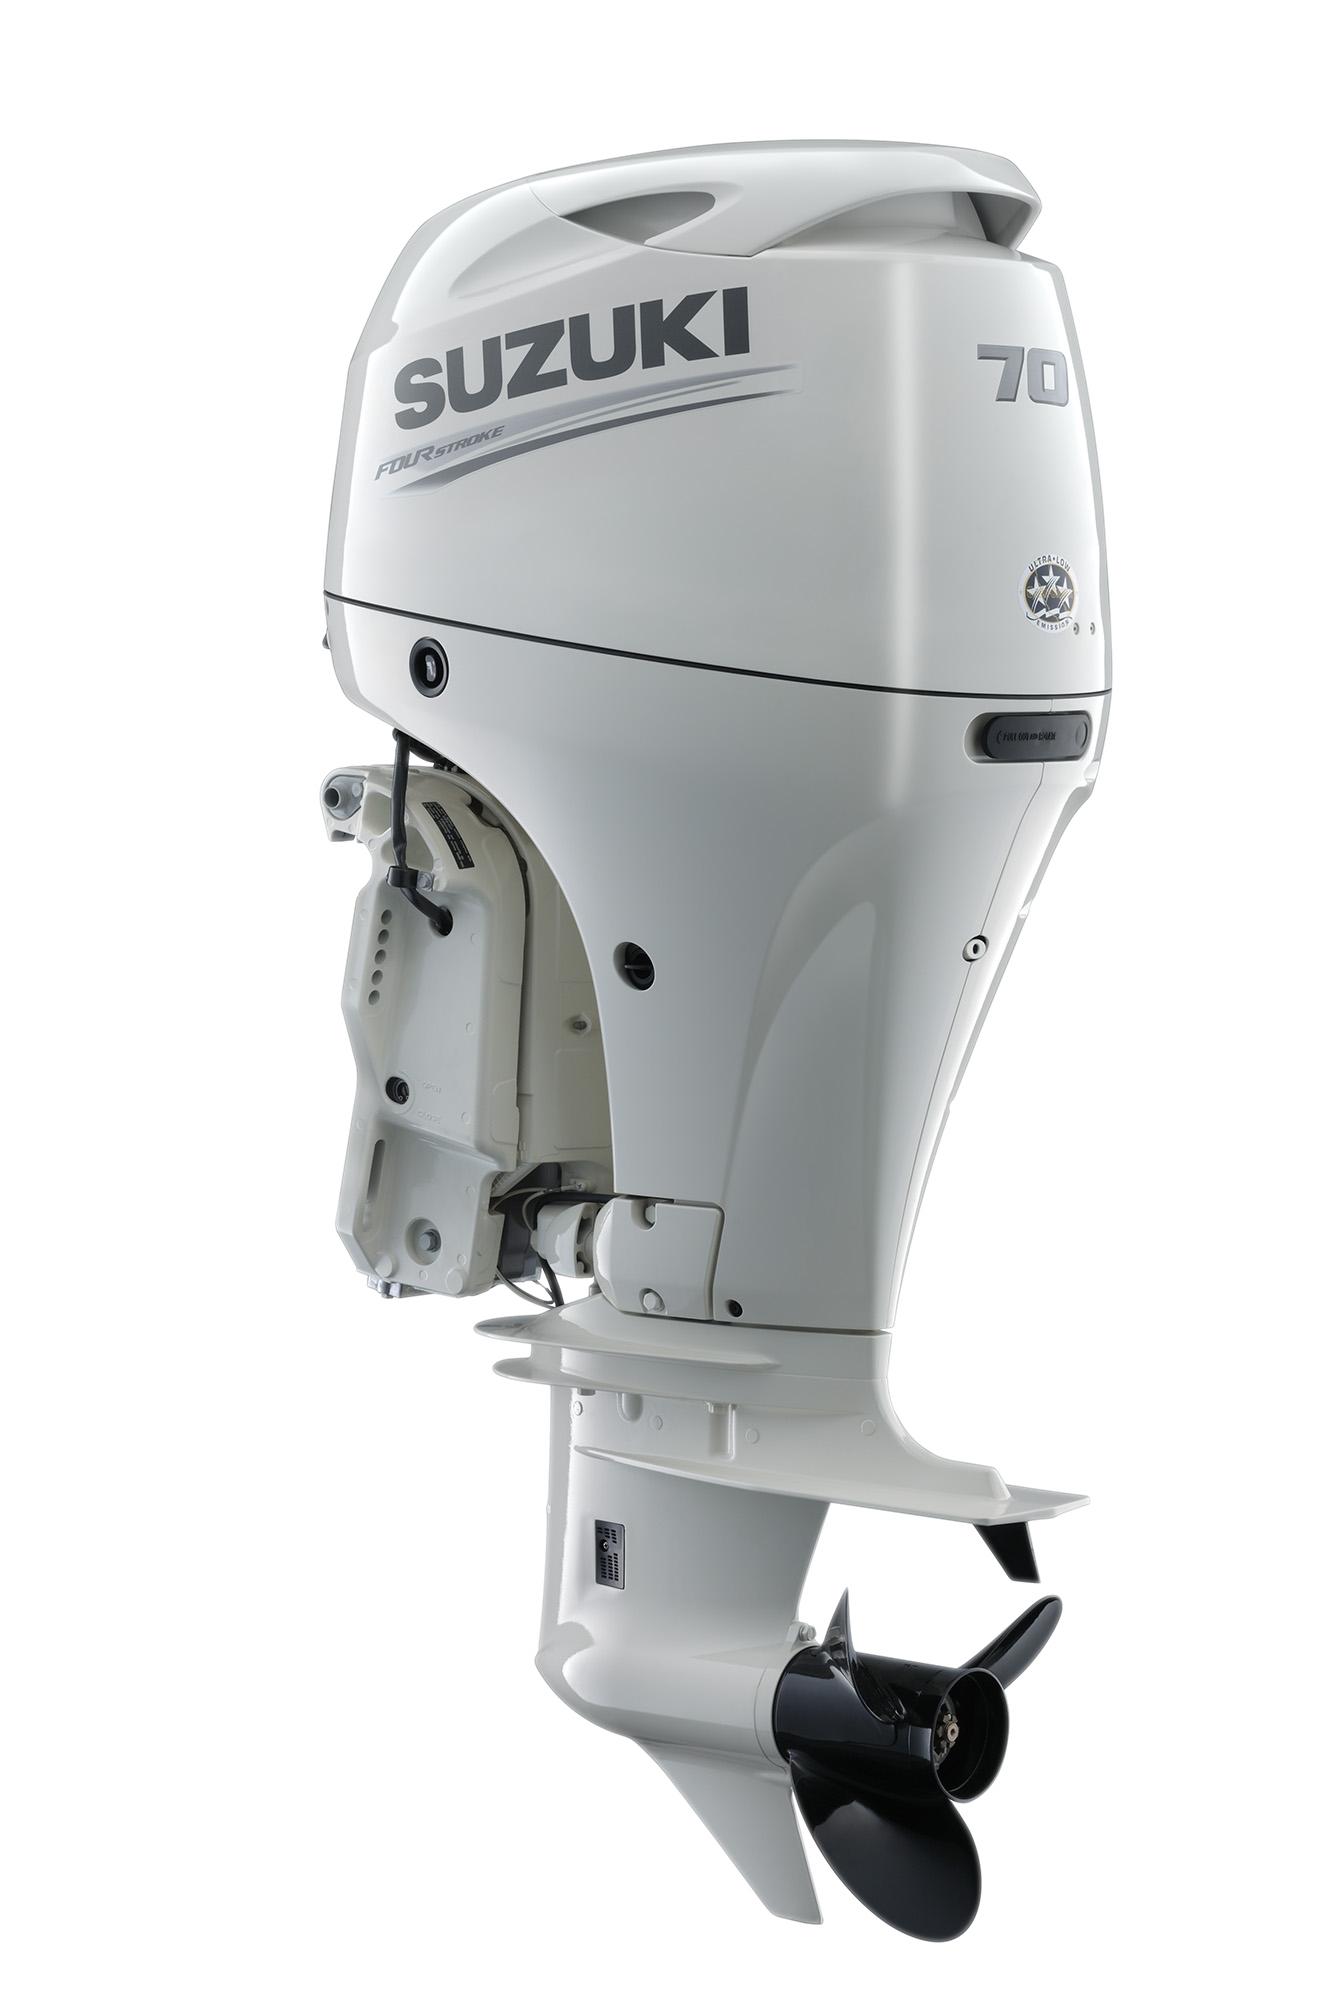 32562DE850044E81AFB88B0299B8677B.ashx?w=439&h=294 suzuki marine product lines outboard motors products df70 1998 Suzuki DF70 Power Trim at n-0.co